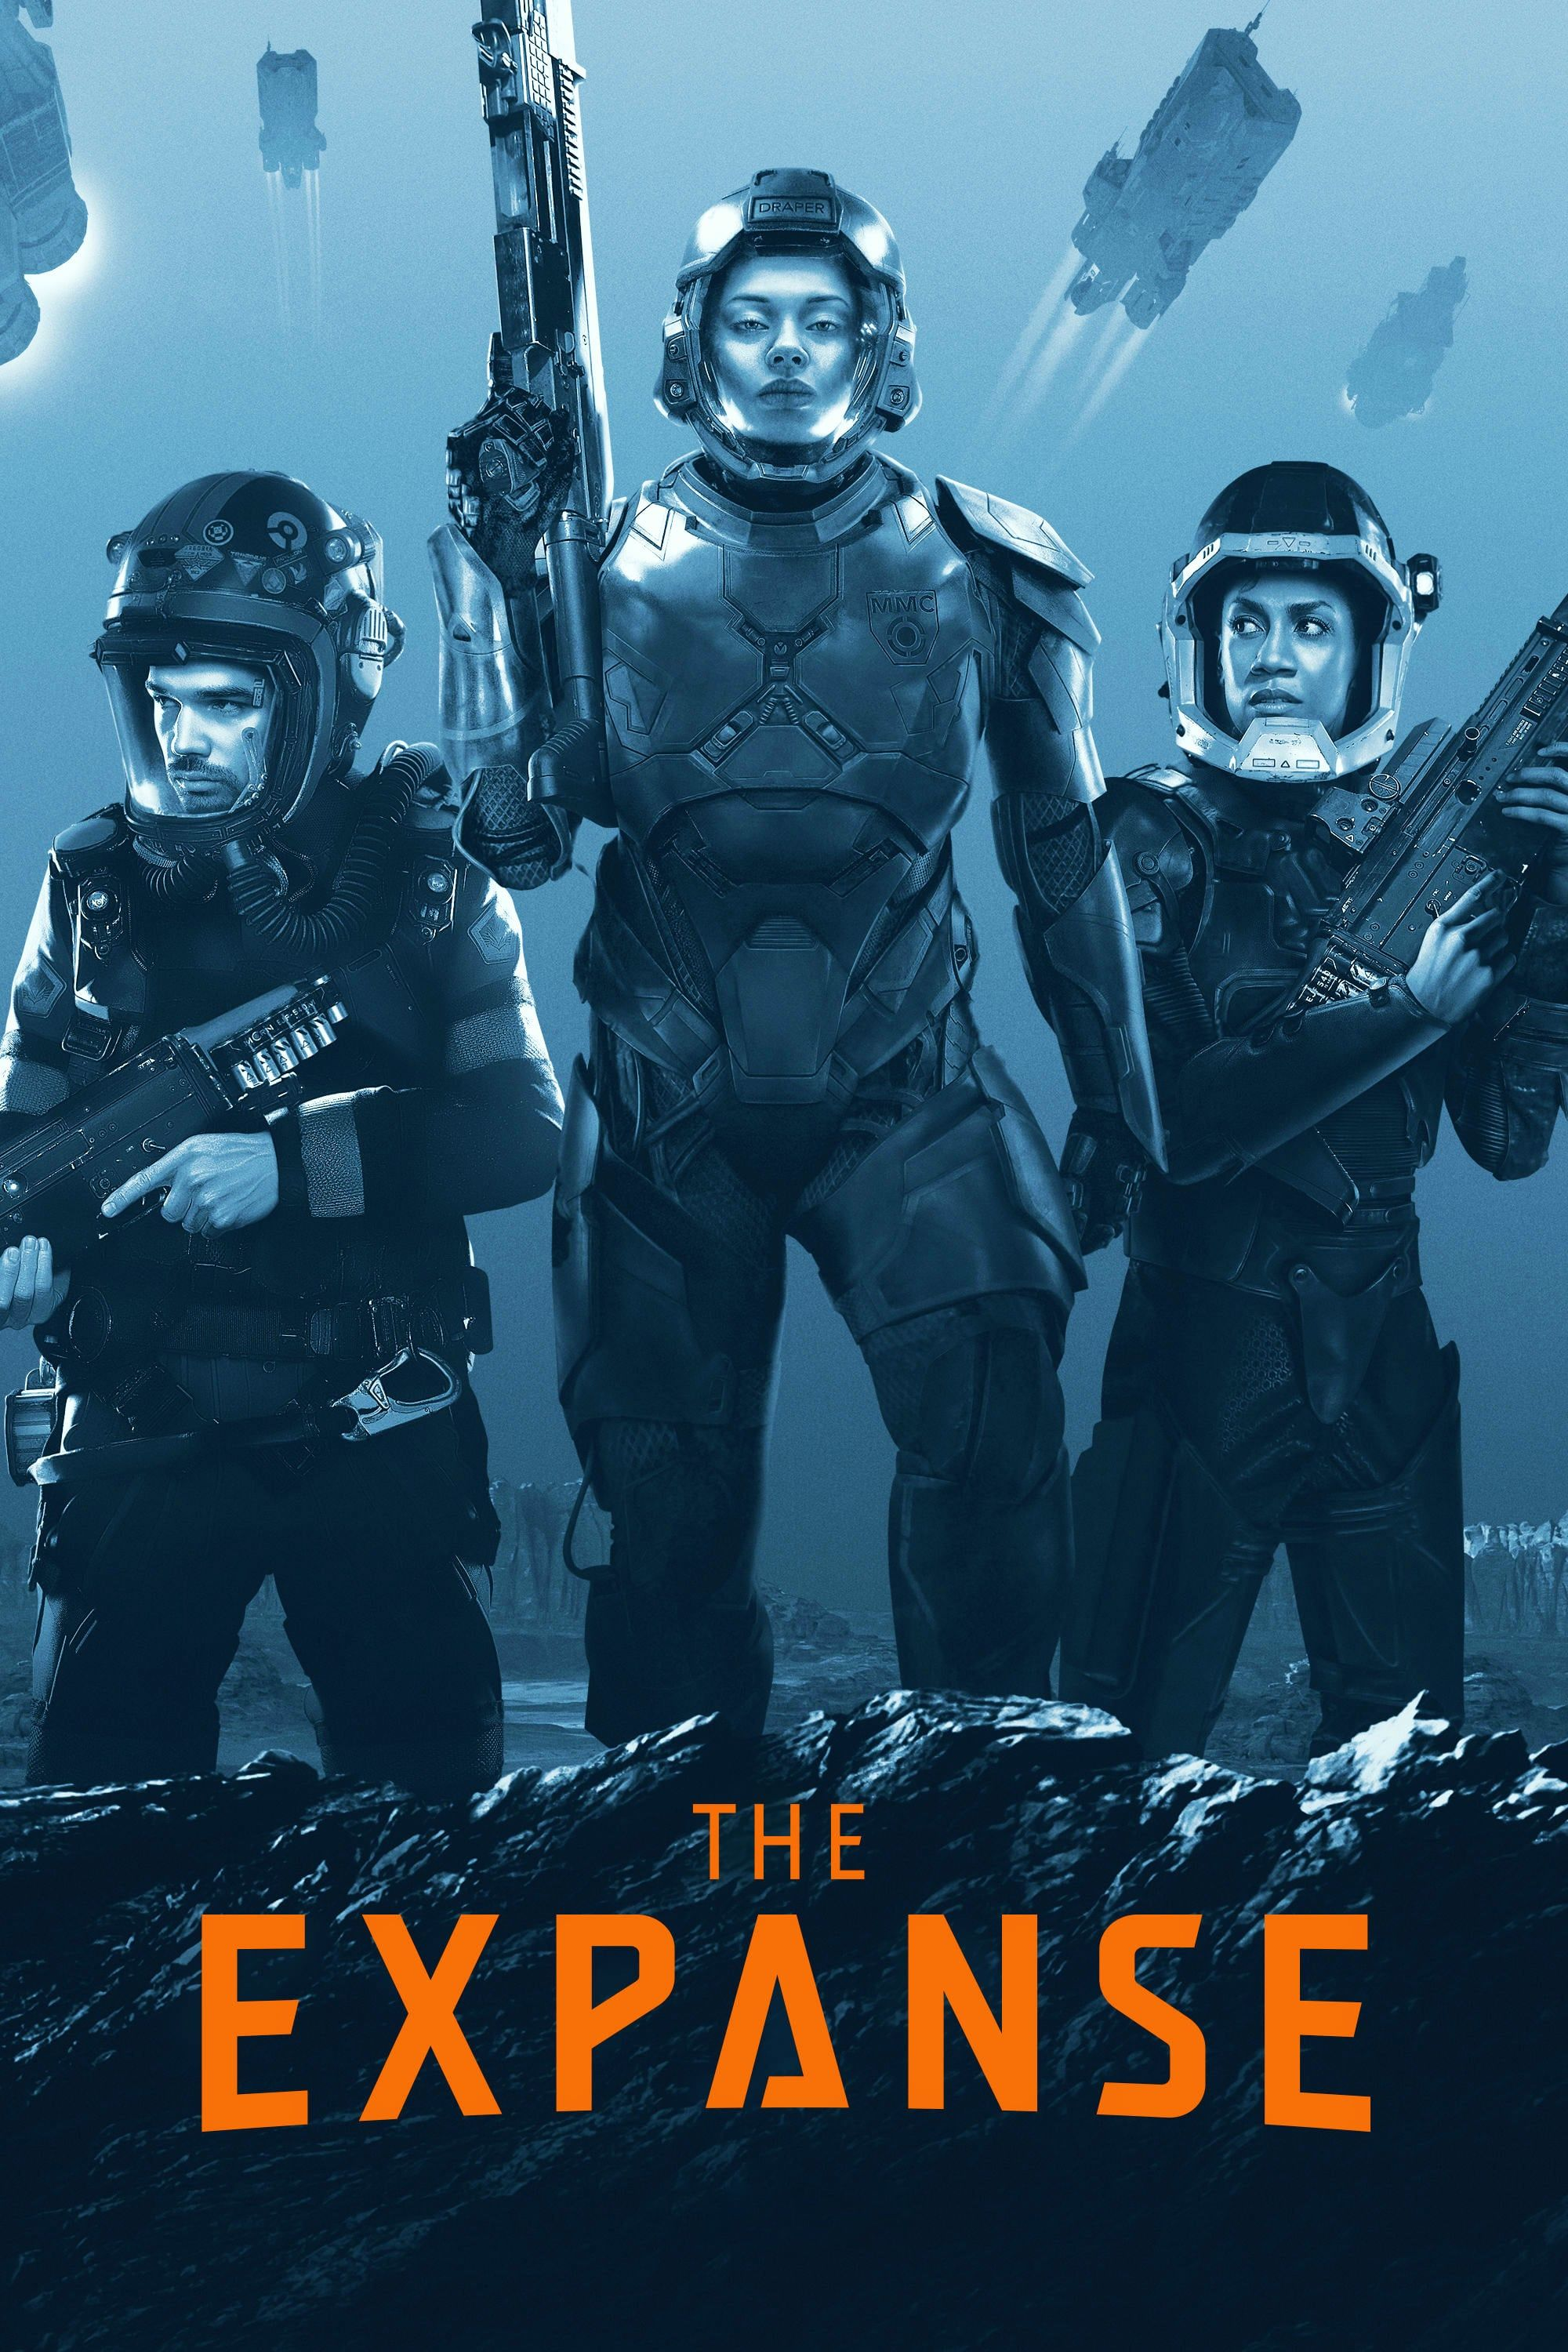 The Expanse cover